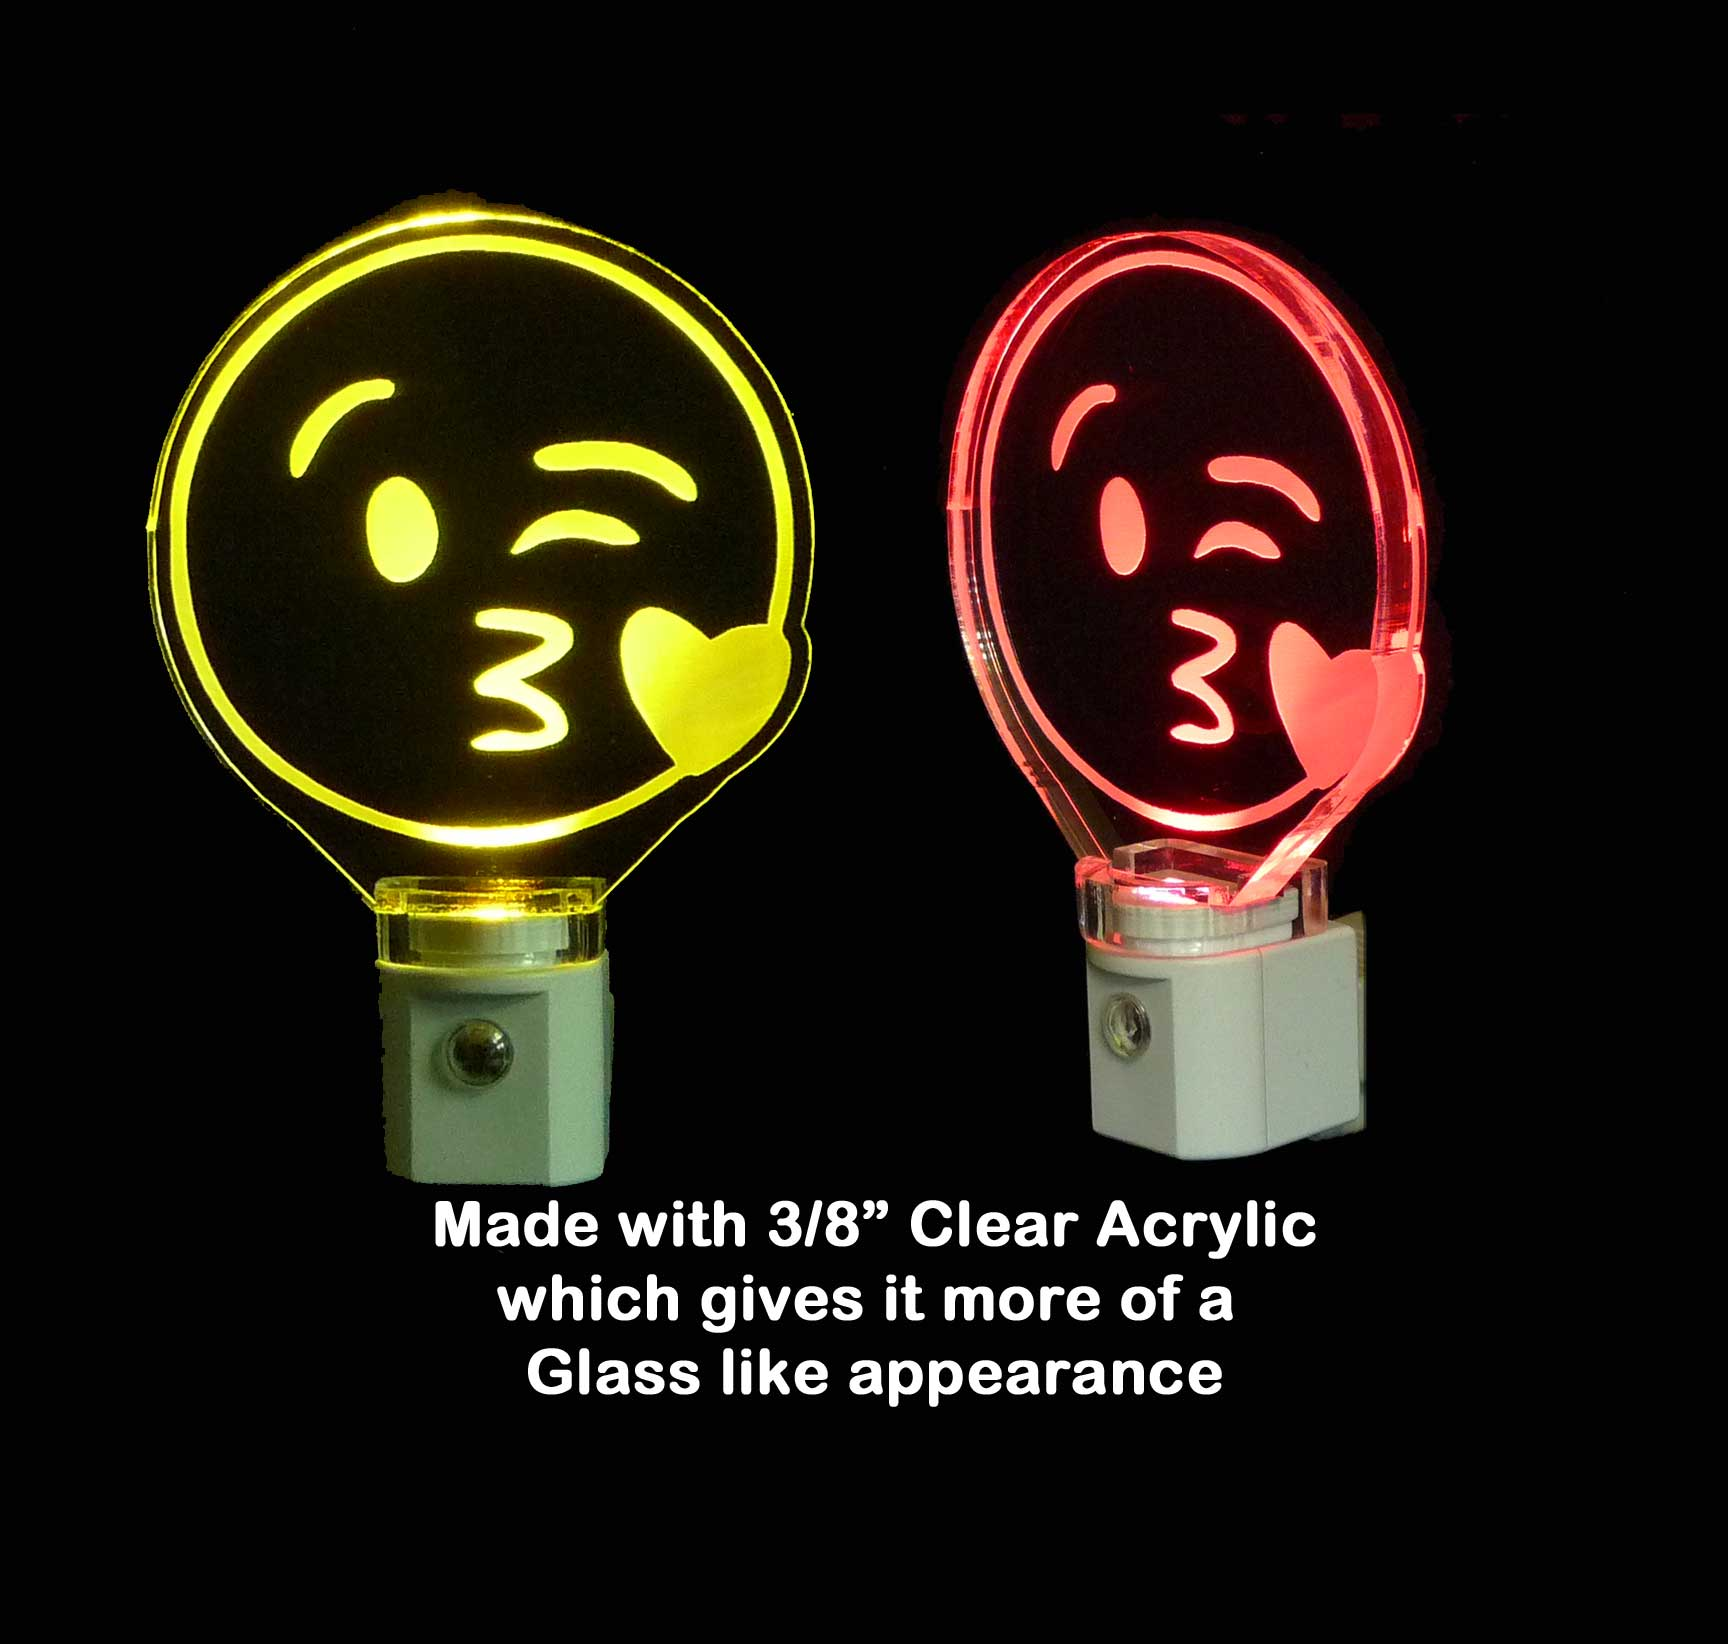 Kissy Heart Emoji LED Night Light